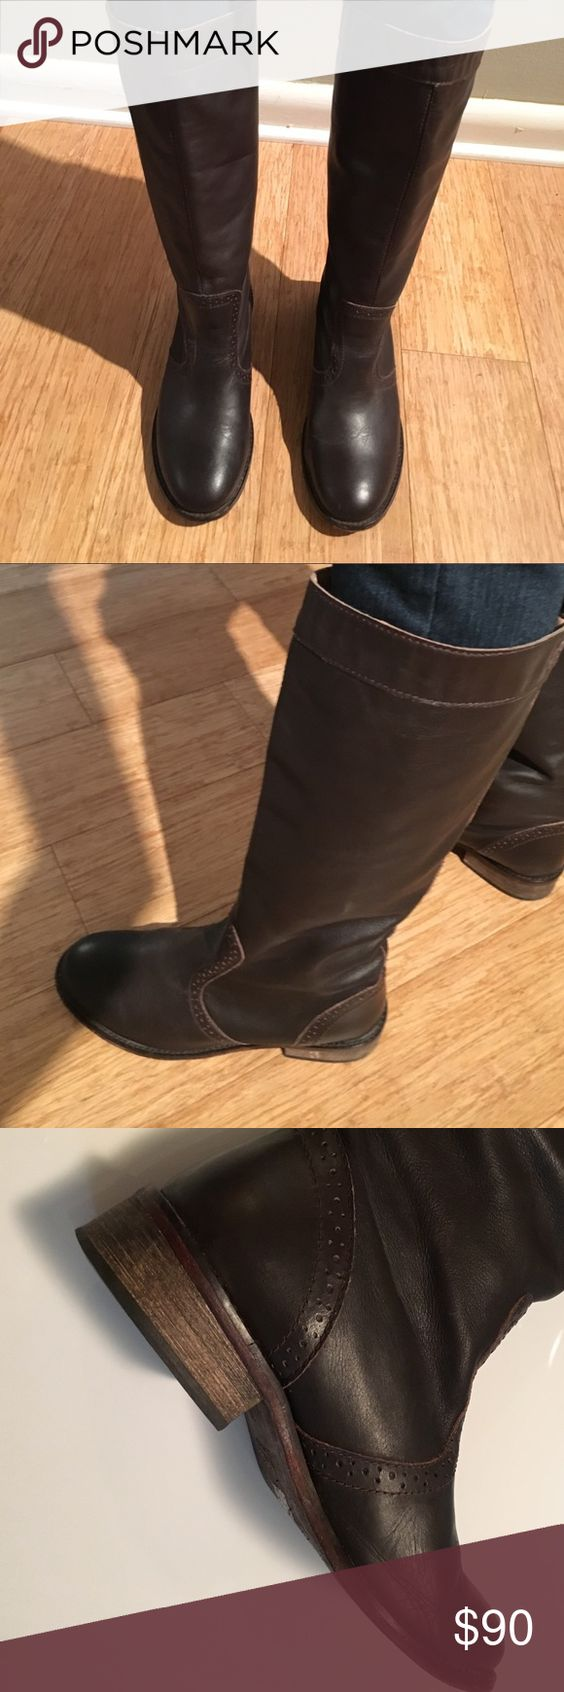 Diesel Tall Brown Boots Slight distressed look. Great condition. Soles show slight signs of wear. Super comfortable and soft leather. One inch heel. Perfect for Fall! Diesel Shoes Winter & Rain Boots